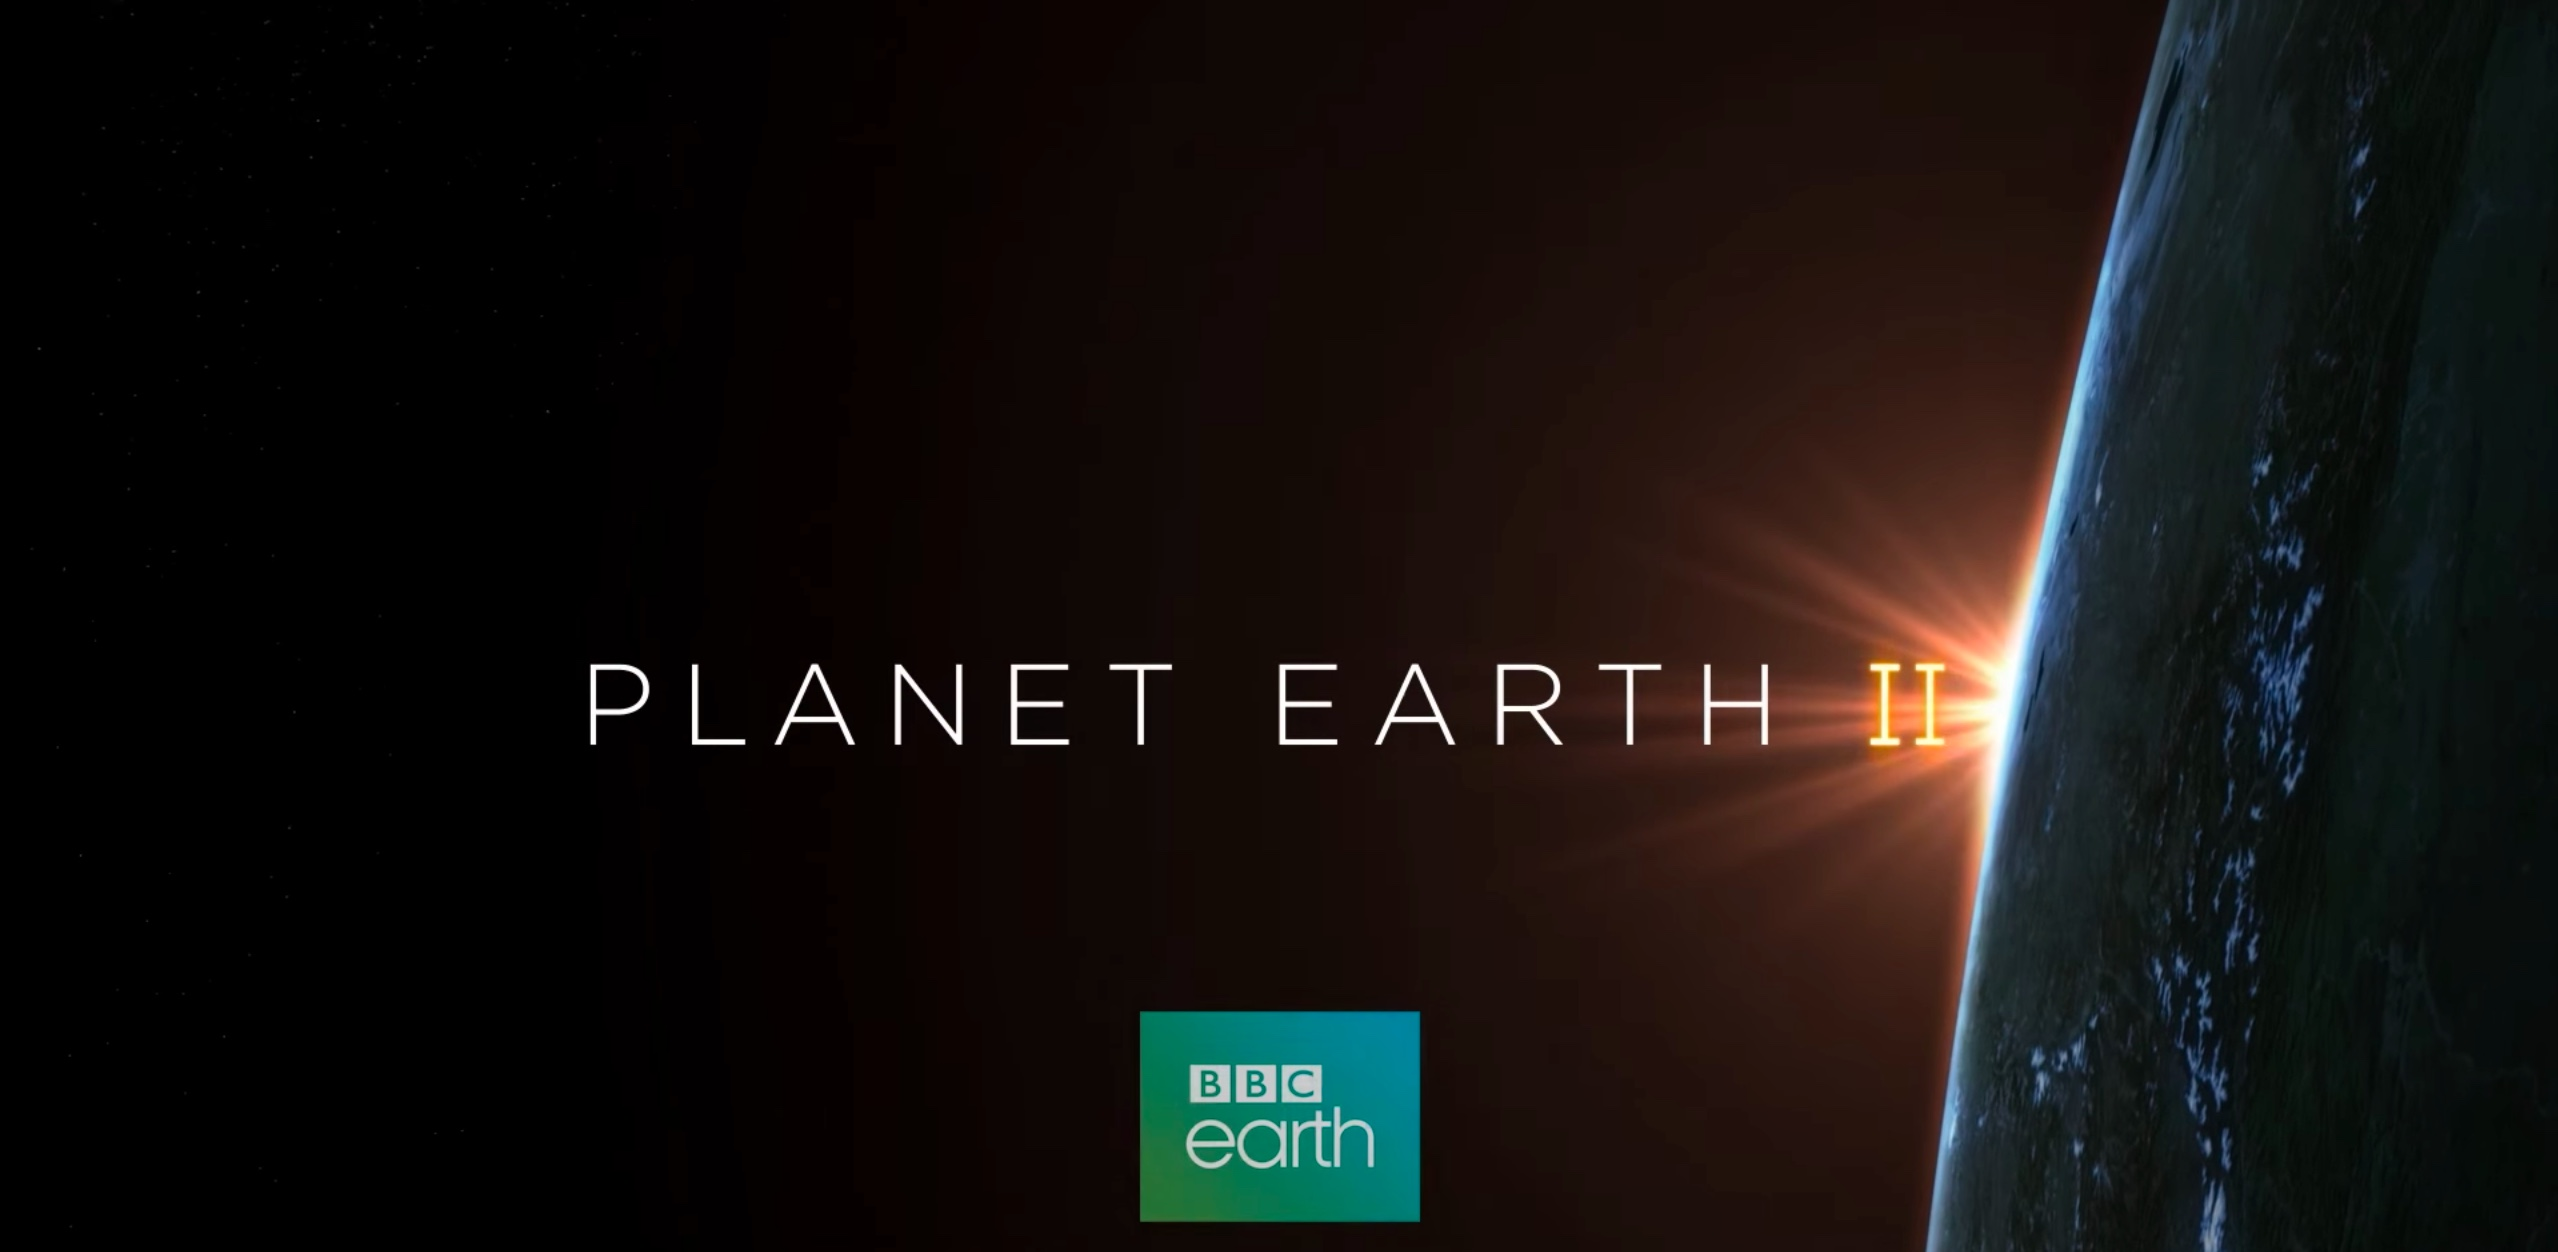 Trailer for BBC Planet Earth II